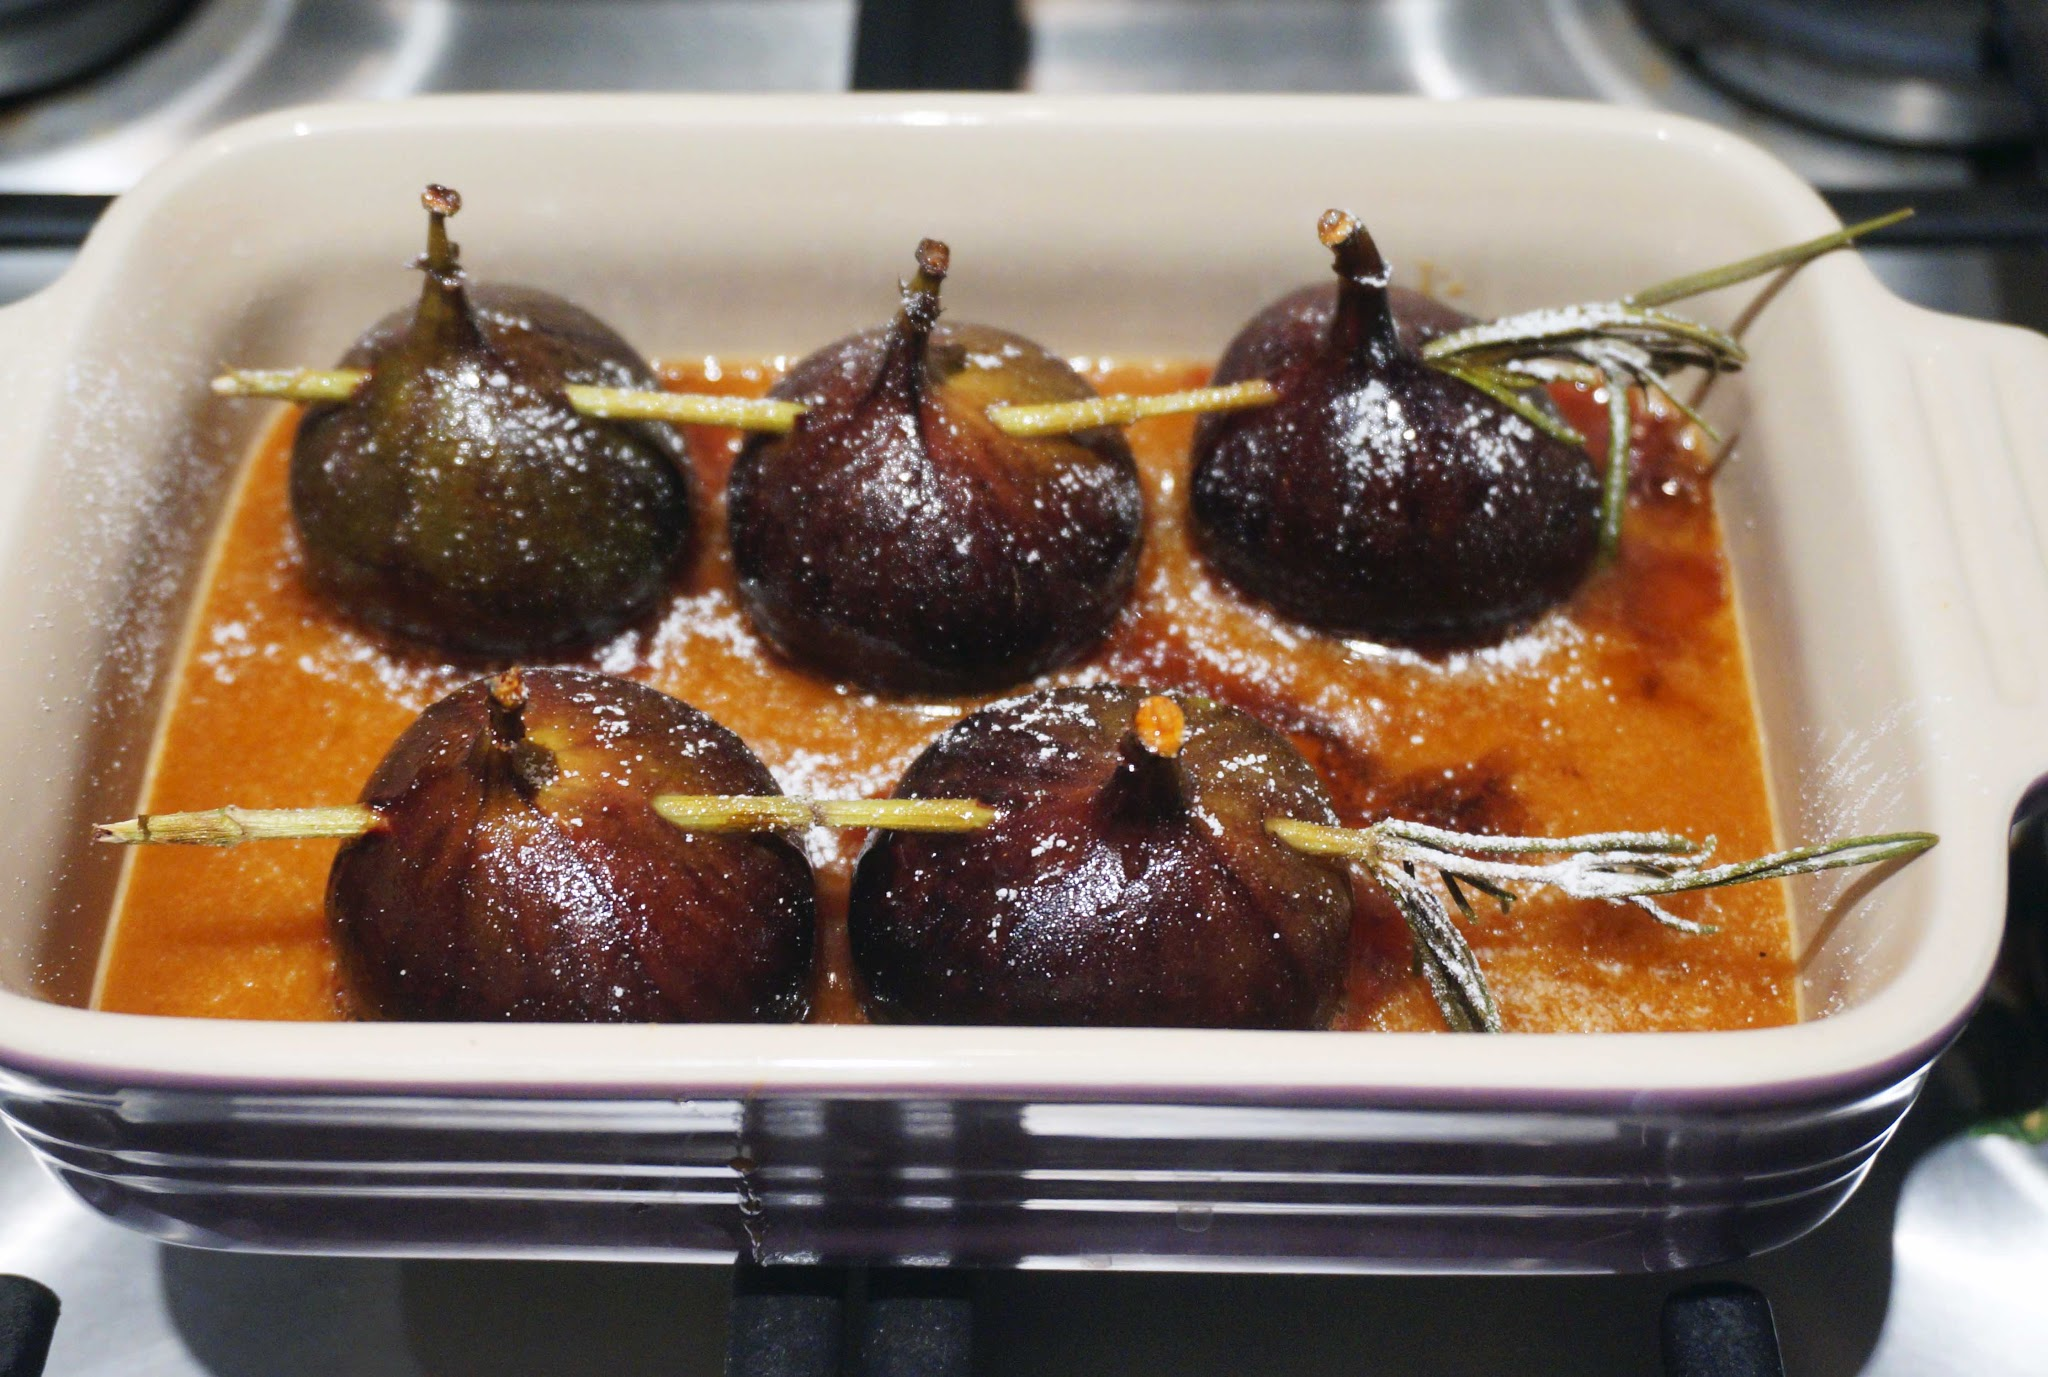 Gordon Ramsay caramelised figs